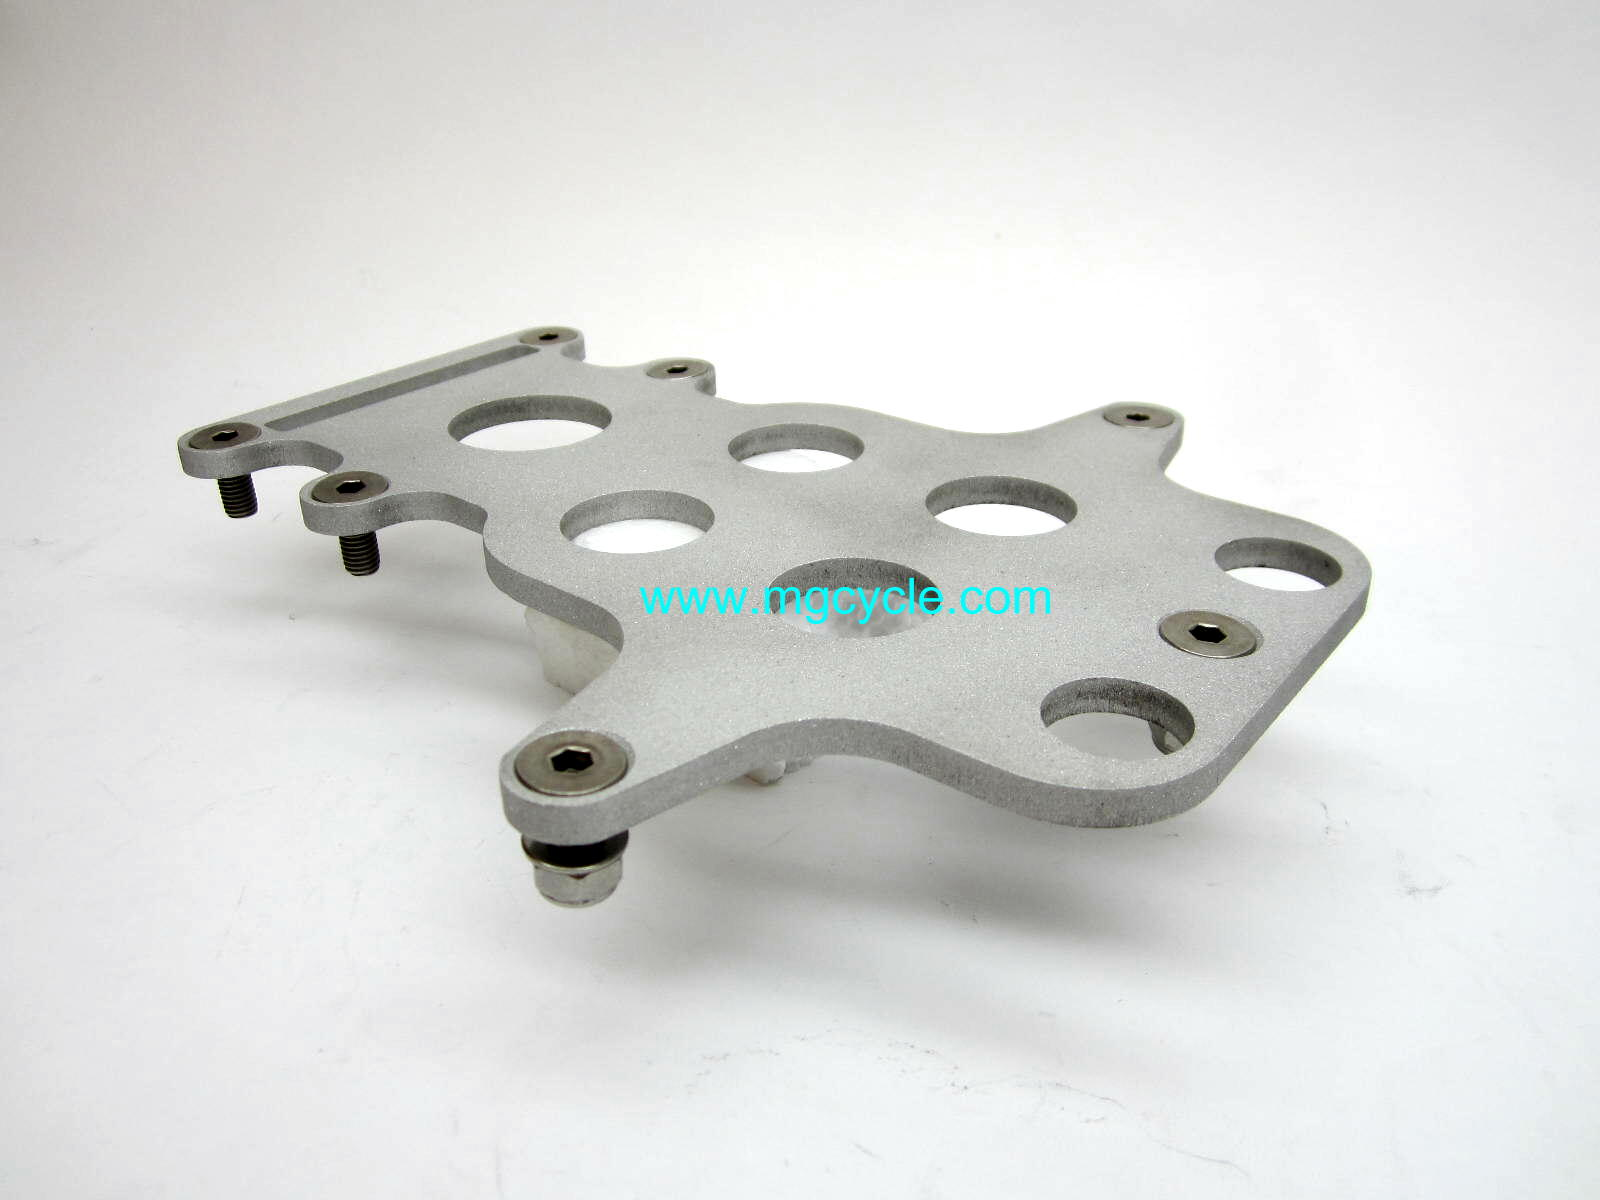 alloy battery plate, custom applications